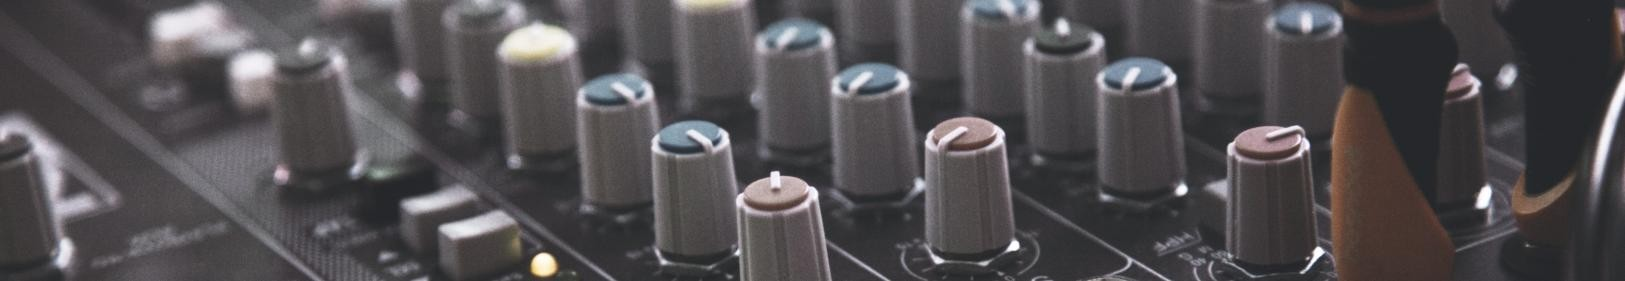 Services to the Broadcasting and Audio Industry